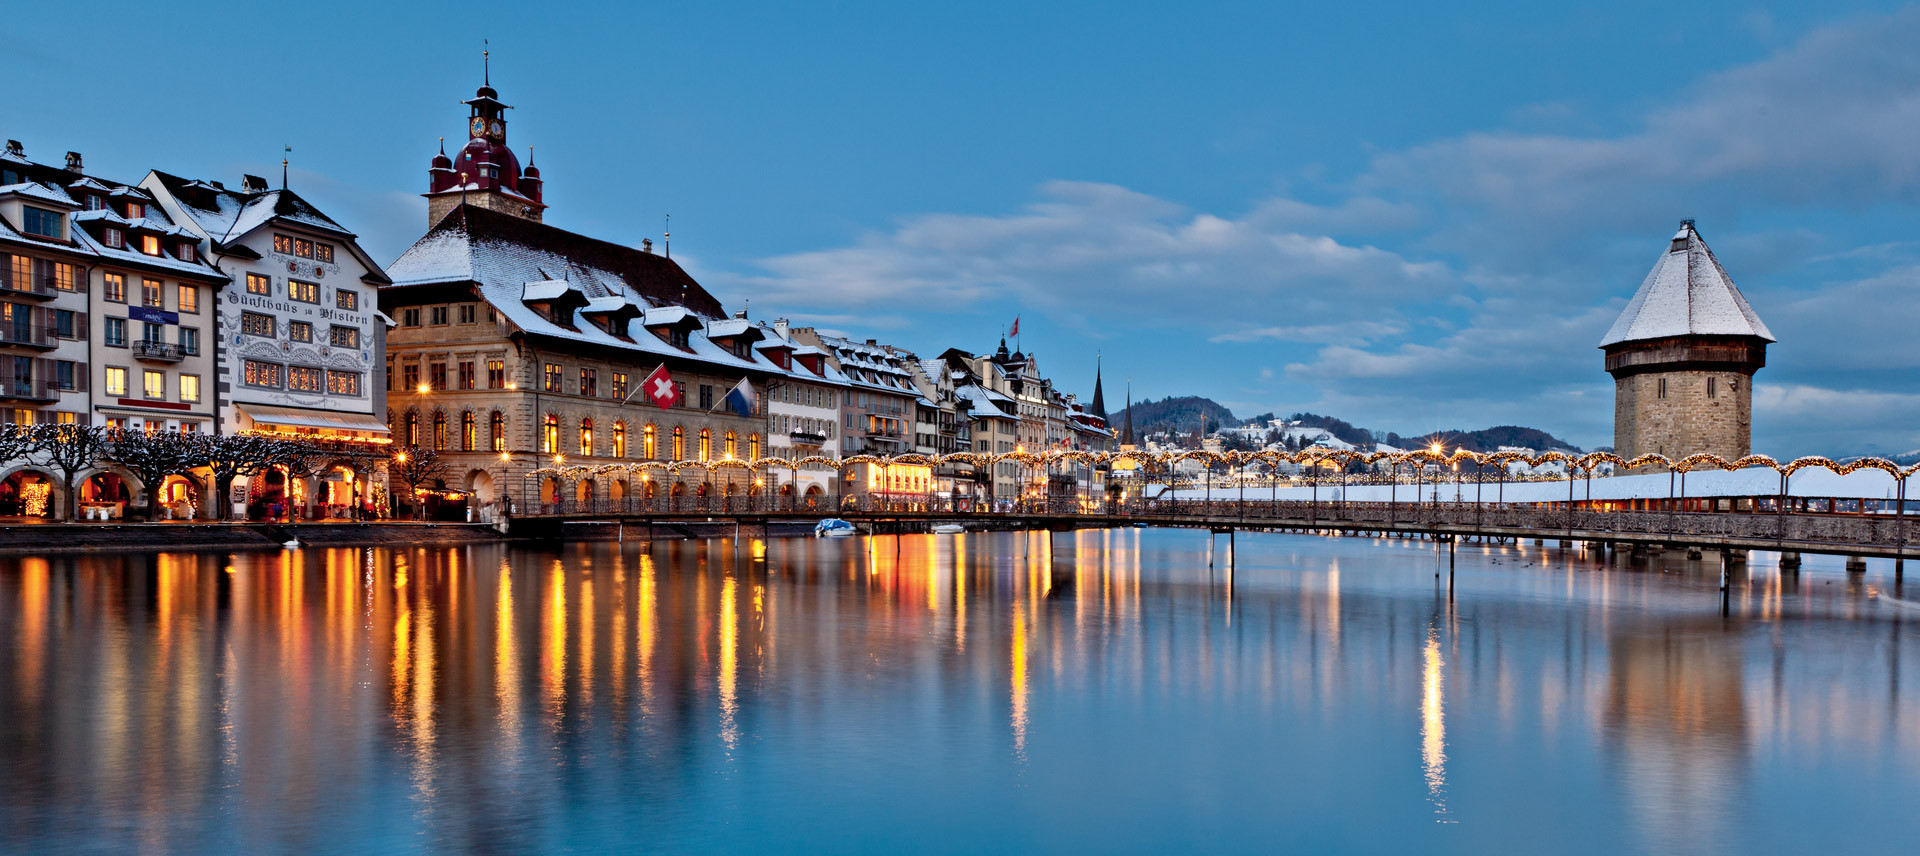 Lucerne 2021 benefit from additional financial support for Winter Universiade